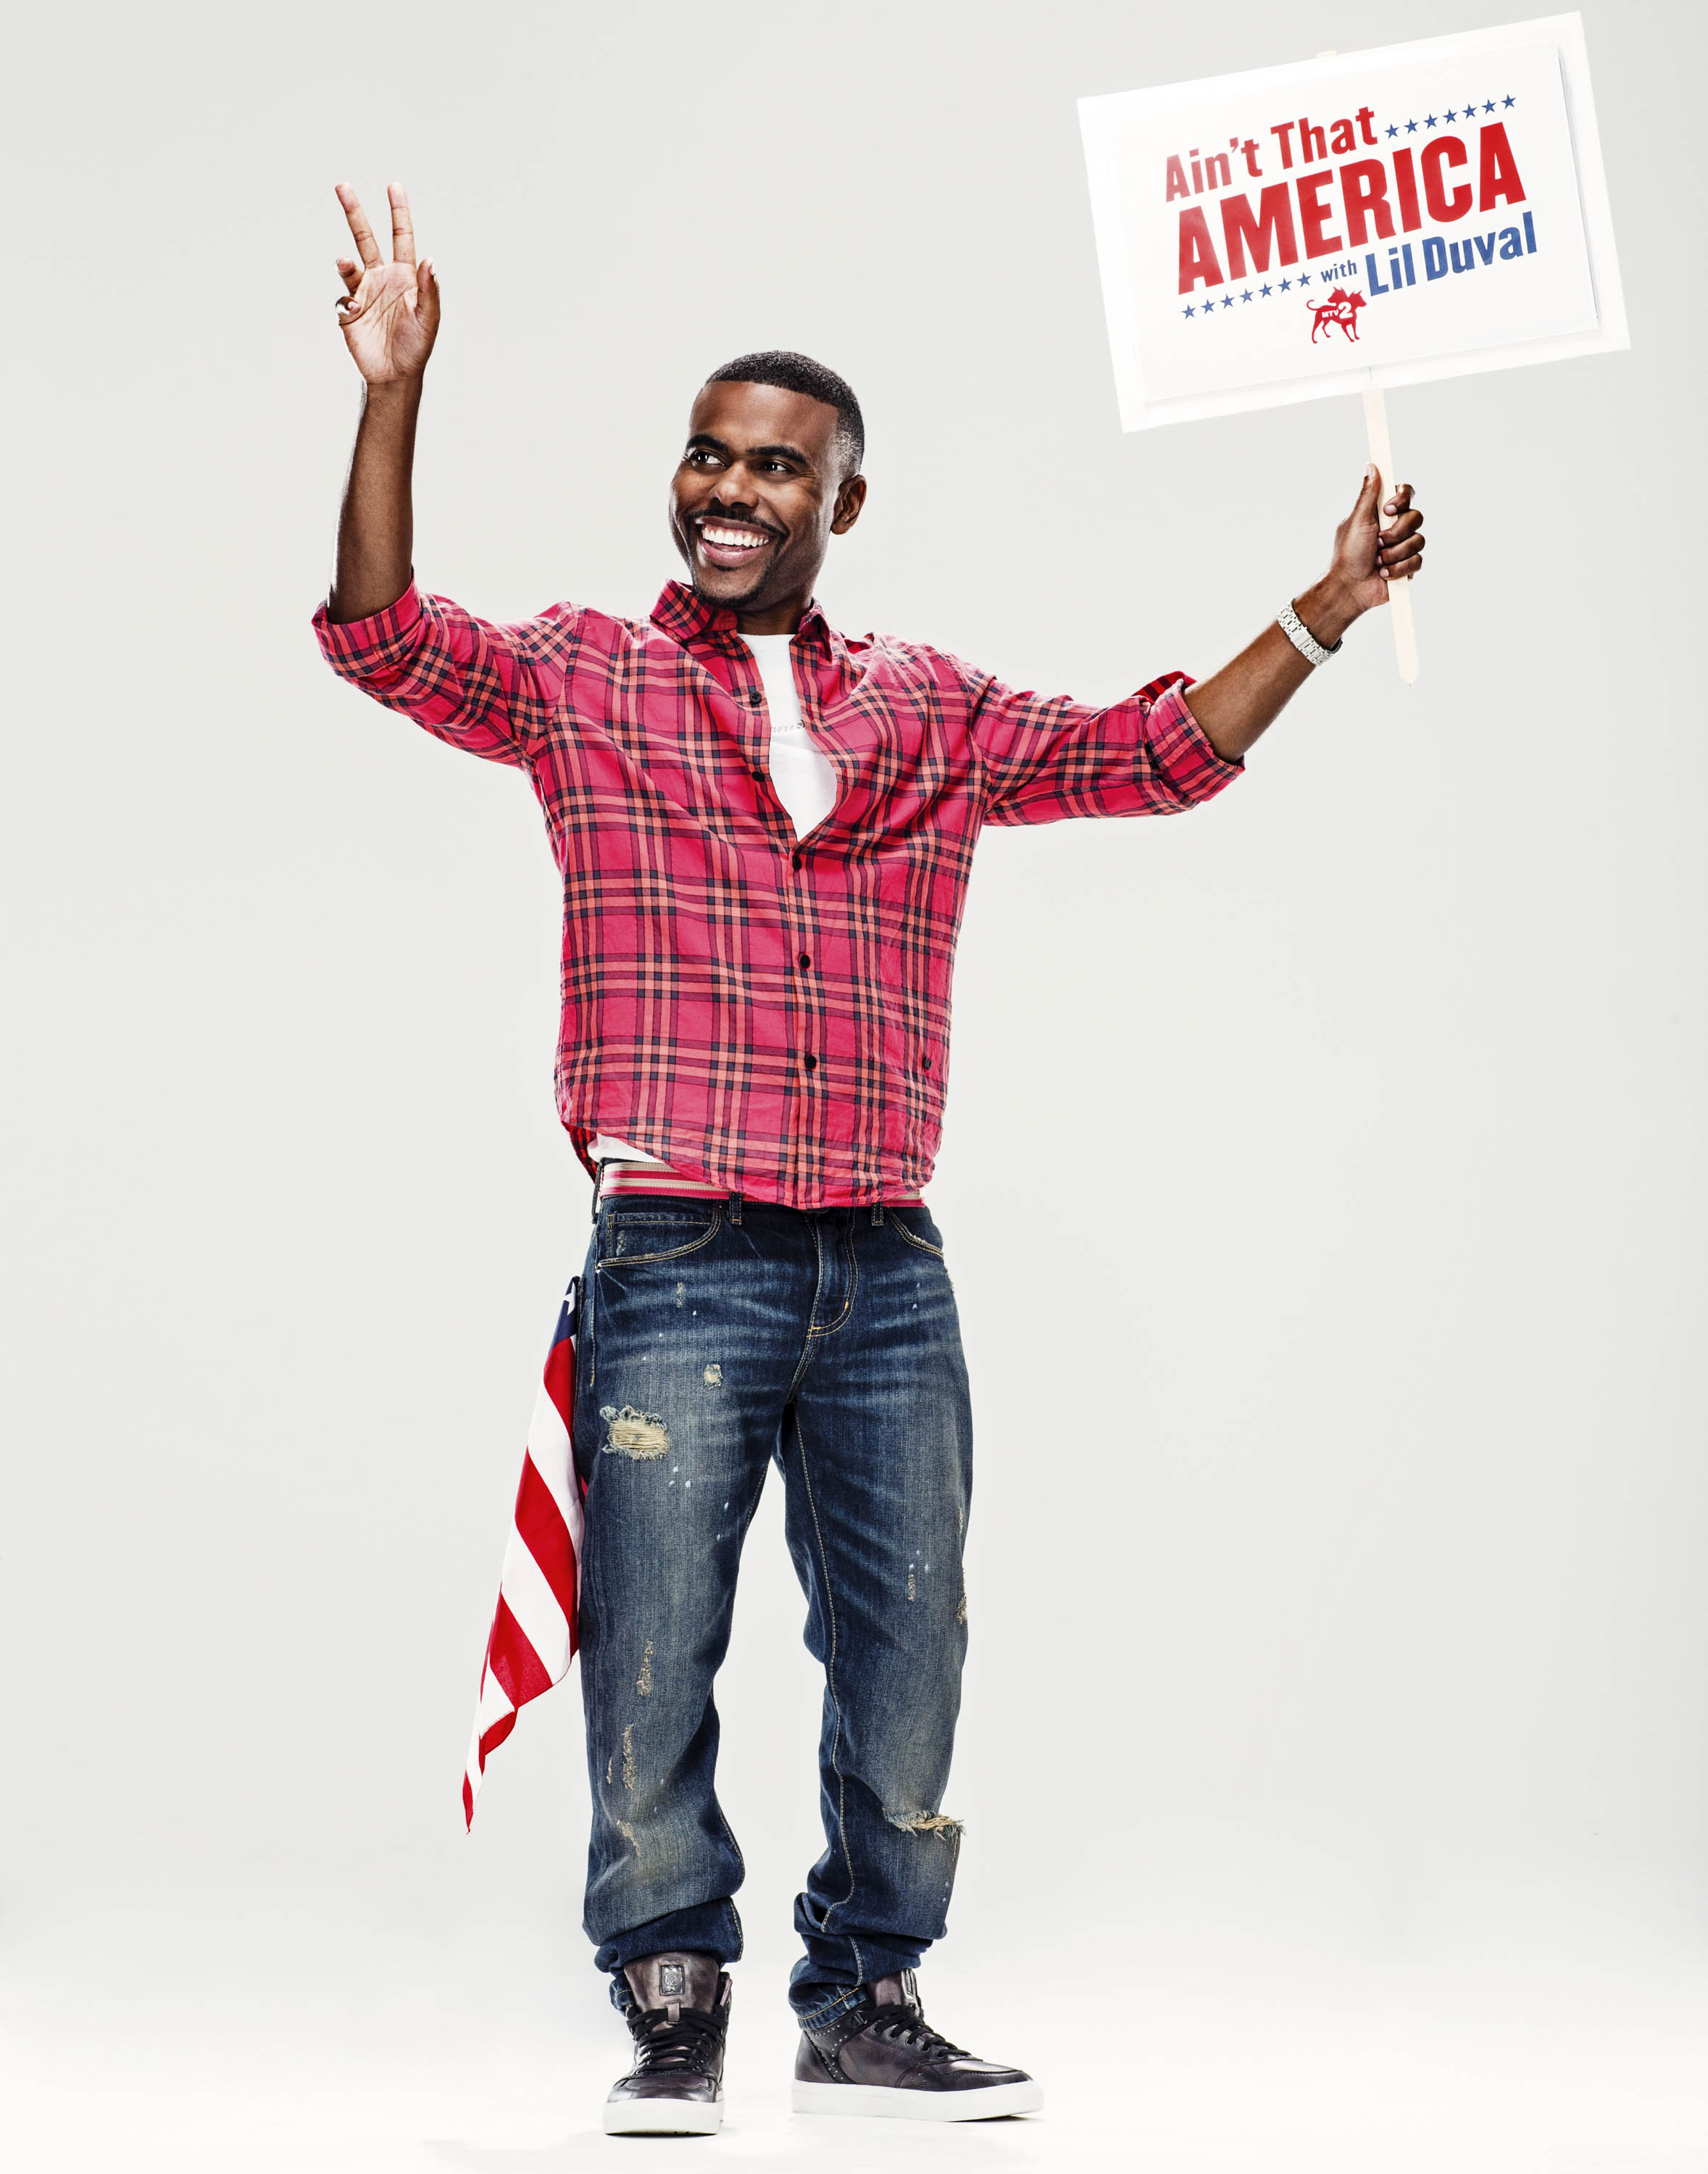 Aint_that_America lil Duval